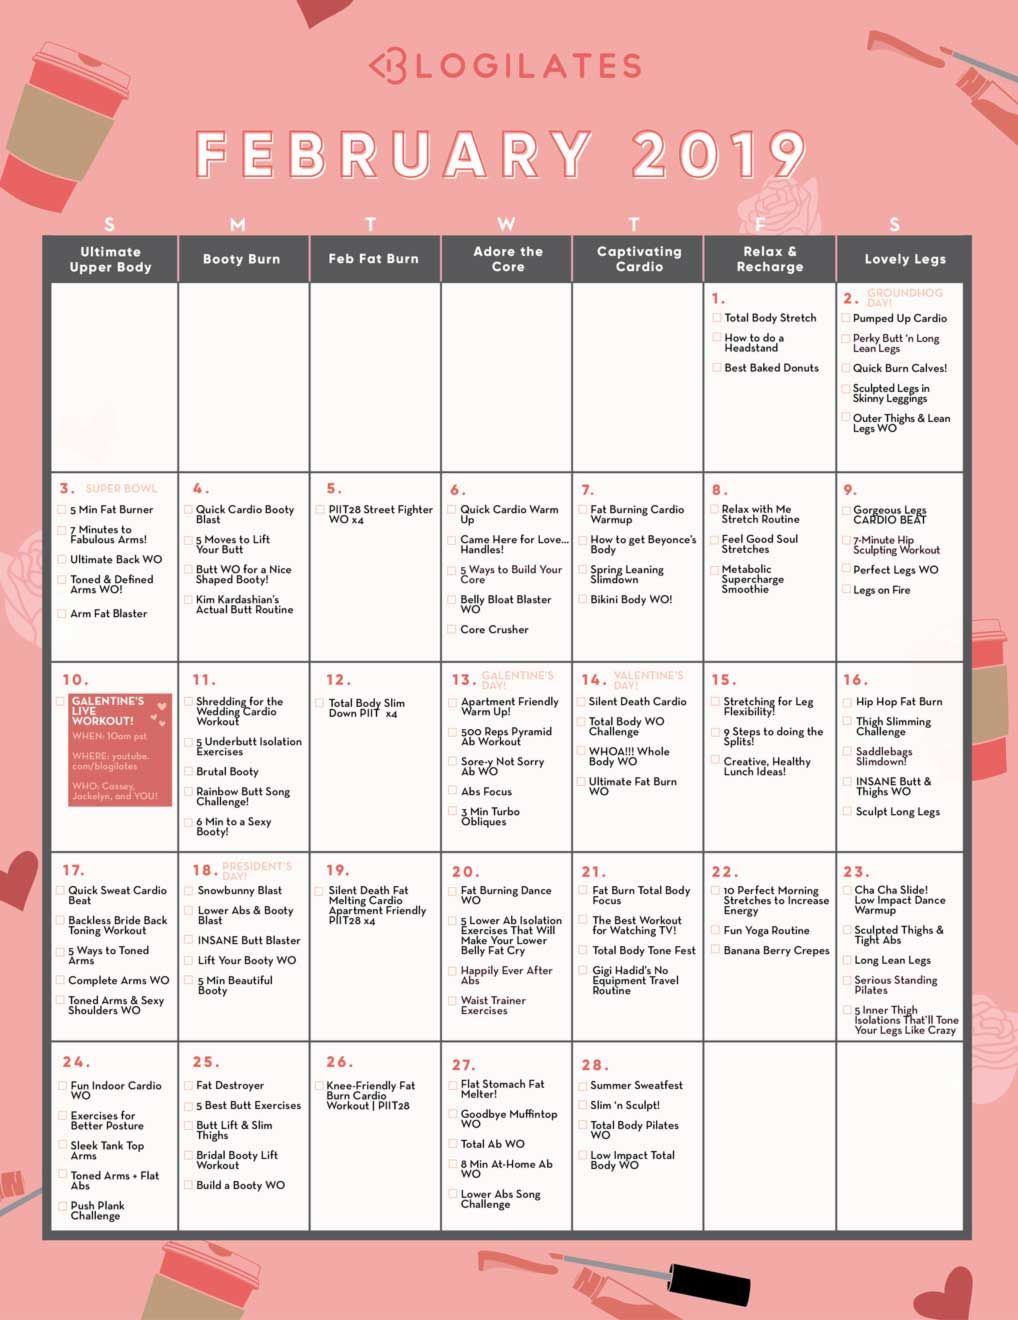 Blogilates Calendar February 2019 Your February Workout Calendar! | Health | Workout calendar